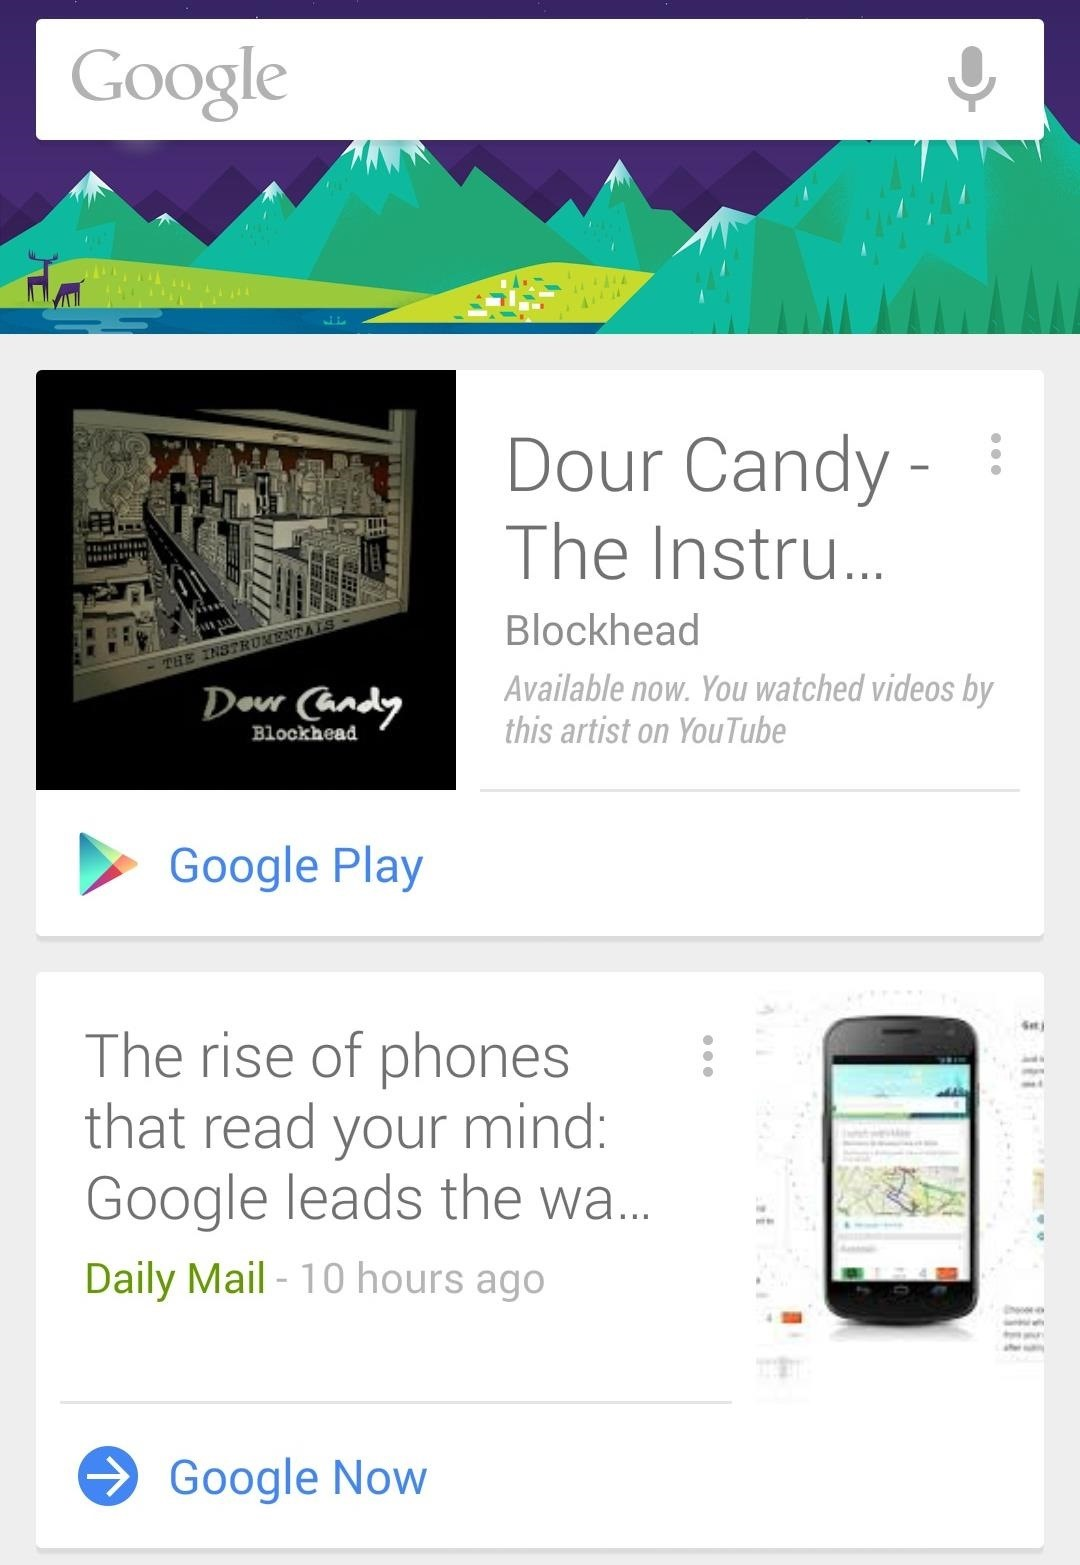 The Ultimate Guide to Using Google Now as Your Personal Assistant in Android 4.4 KitKat